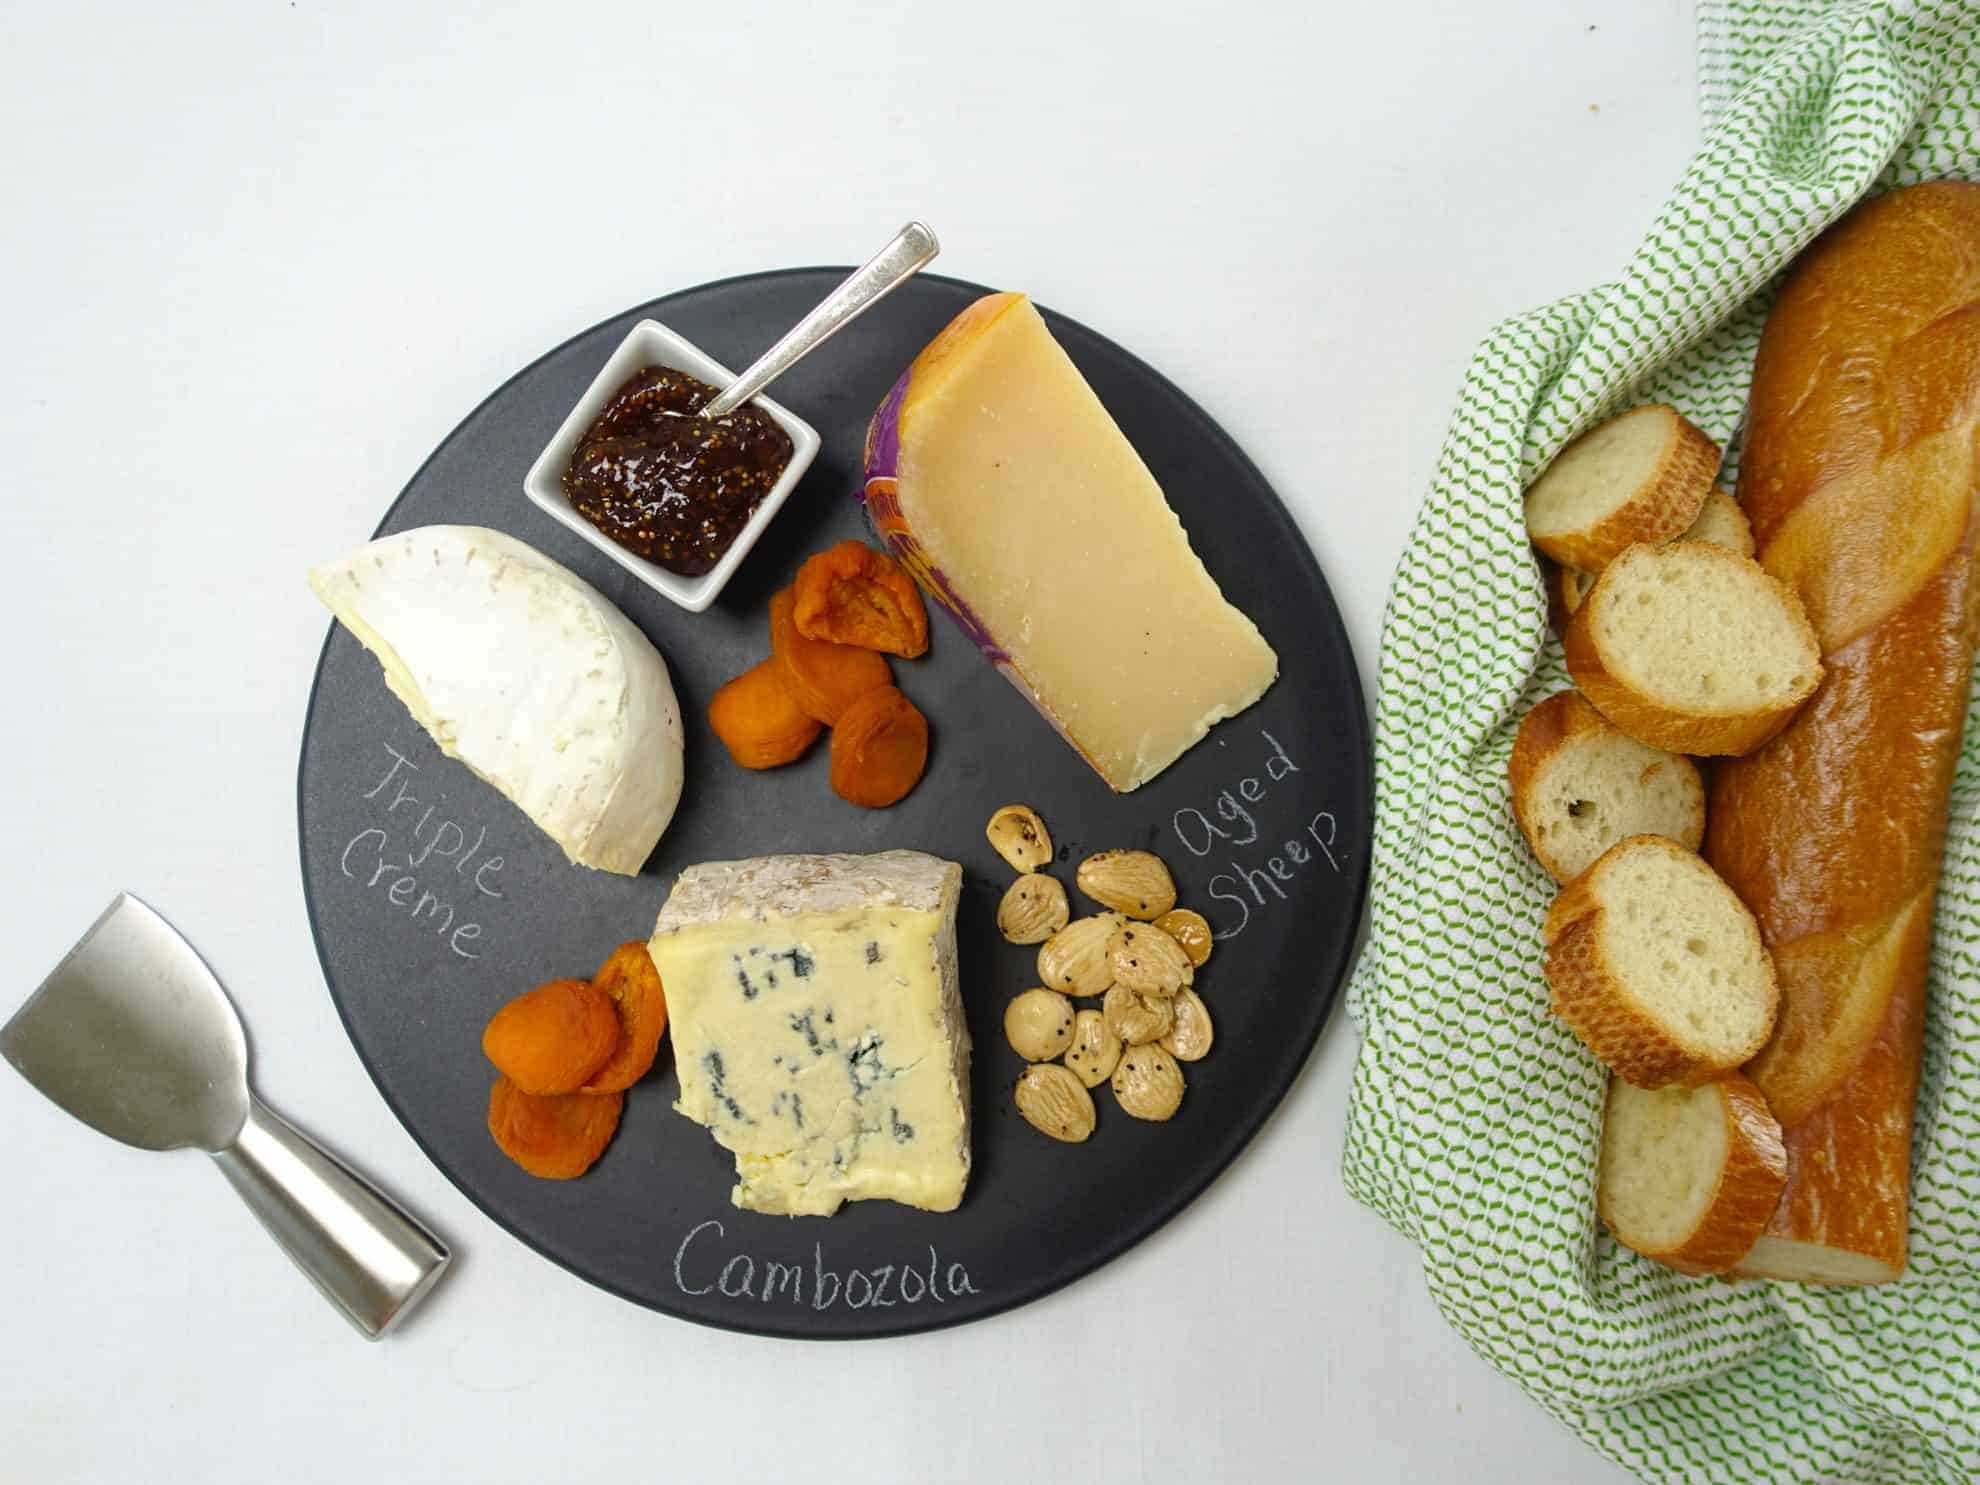 A Cheese and Charcuterie Board with apricots, fig jam, almonds and bread slices.